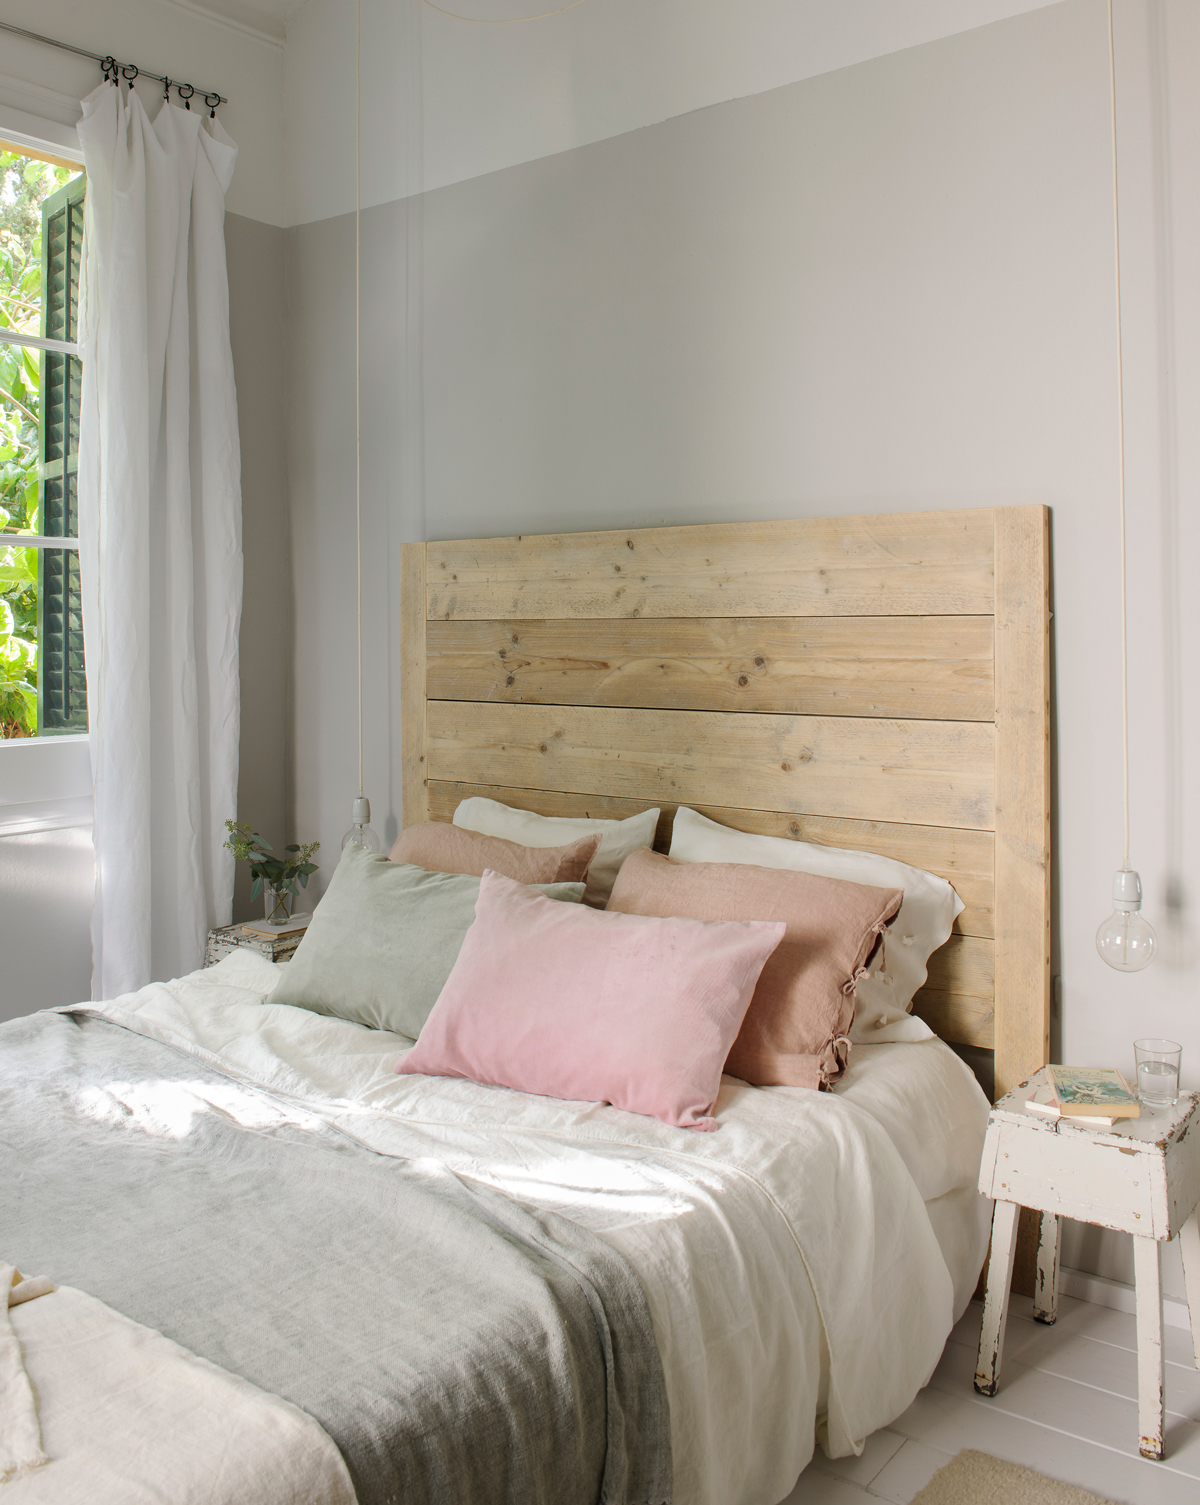 Feng shui para decorar tu dormitorio for Color de cortina con pared blanca